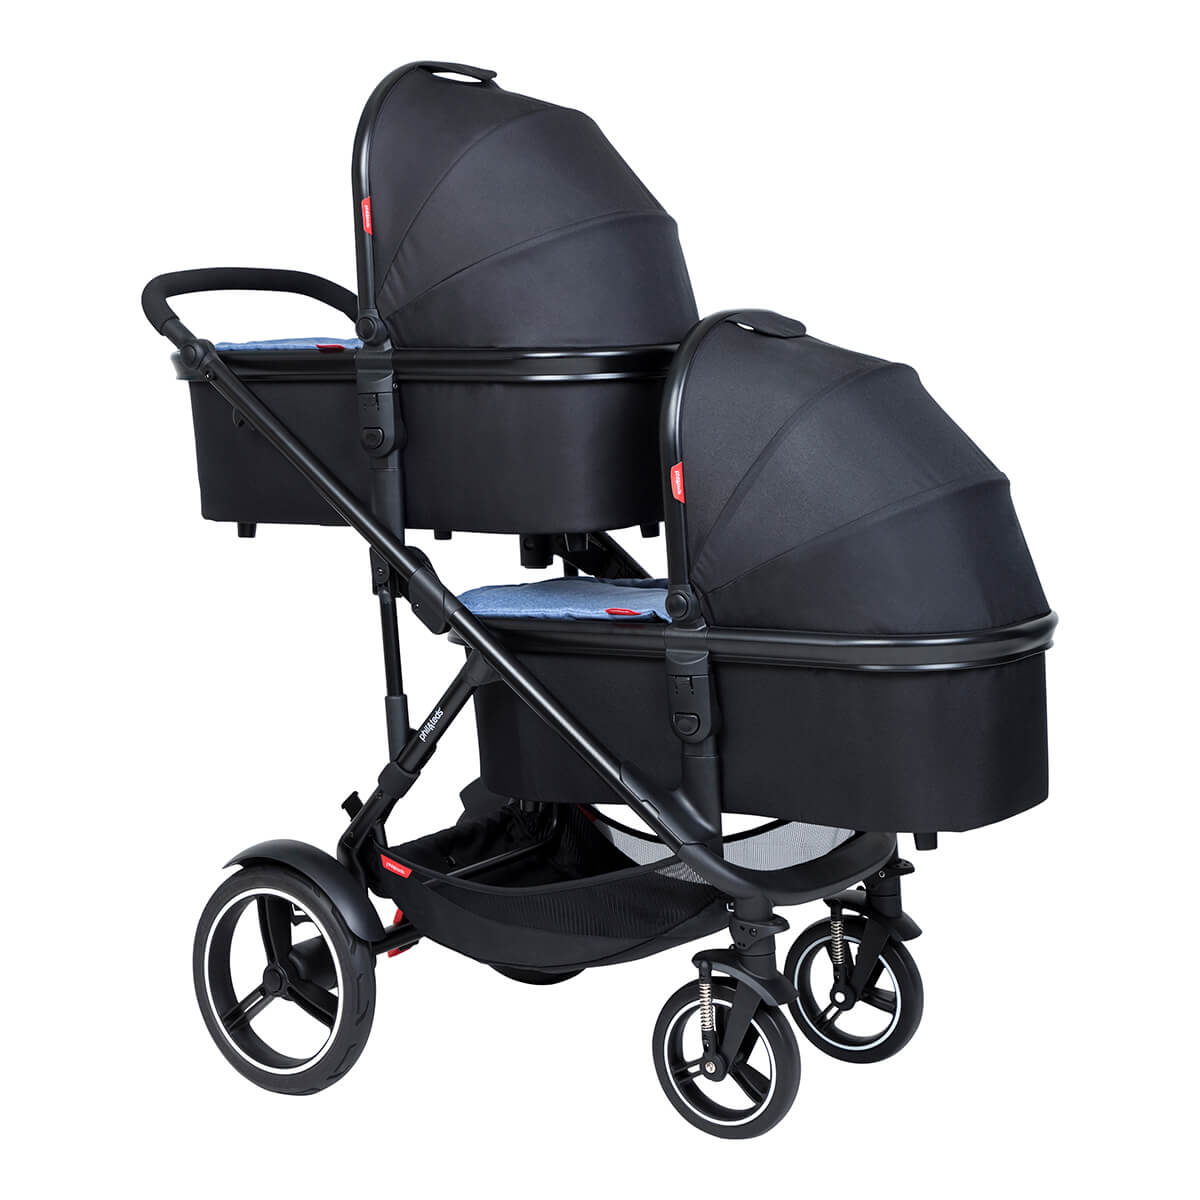 https://cdn.accentuate.io/4509529210968/19272668414040/philteds-voyager-inline-buggy-with-double-snug-carrycots-v1626484642064.jpg?1200x1200